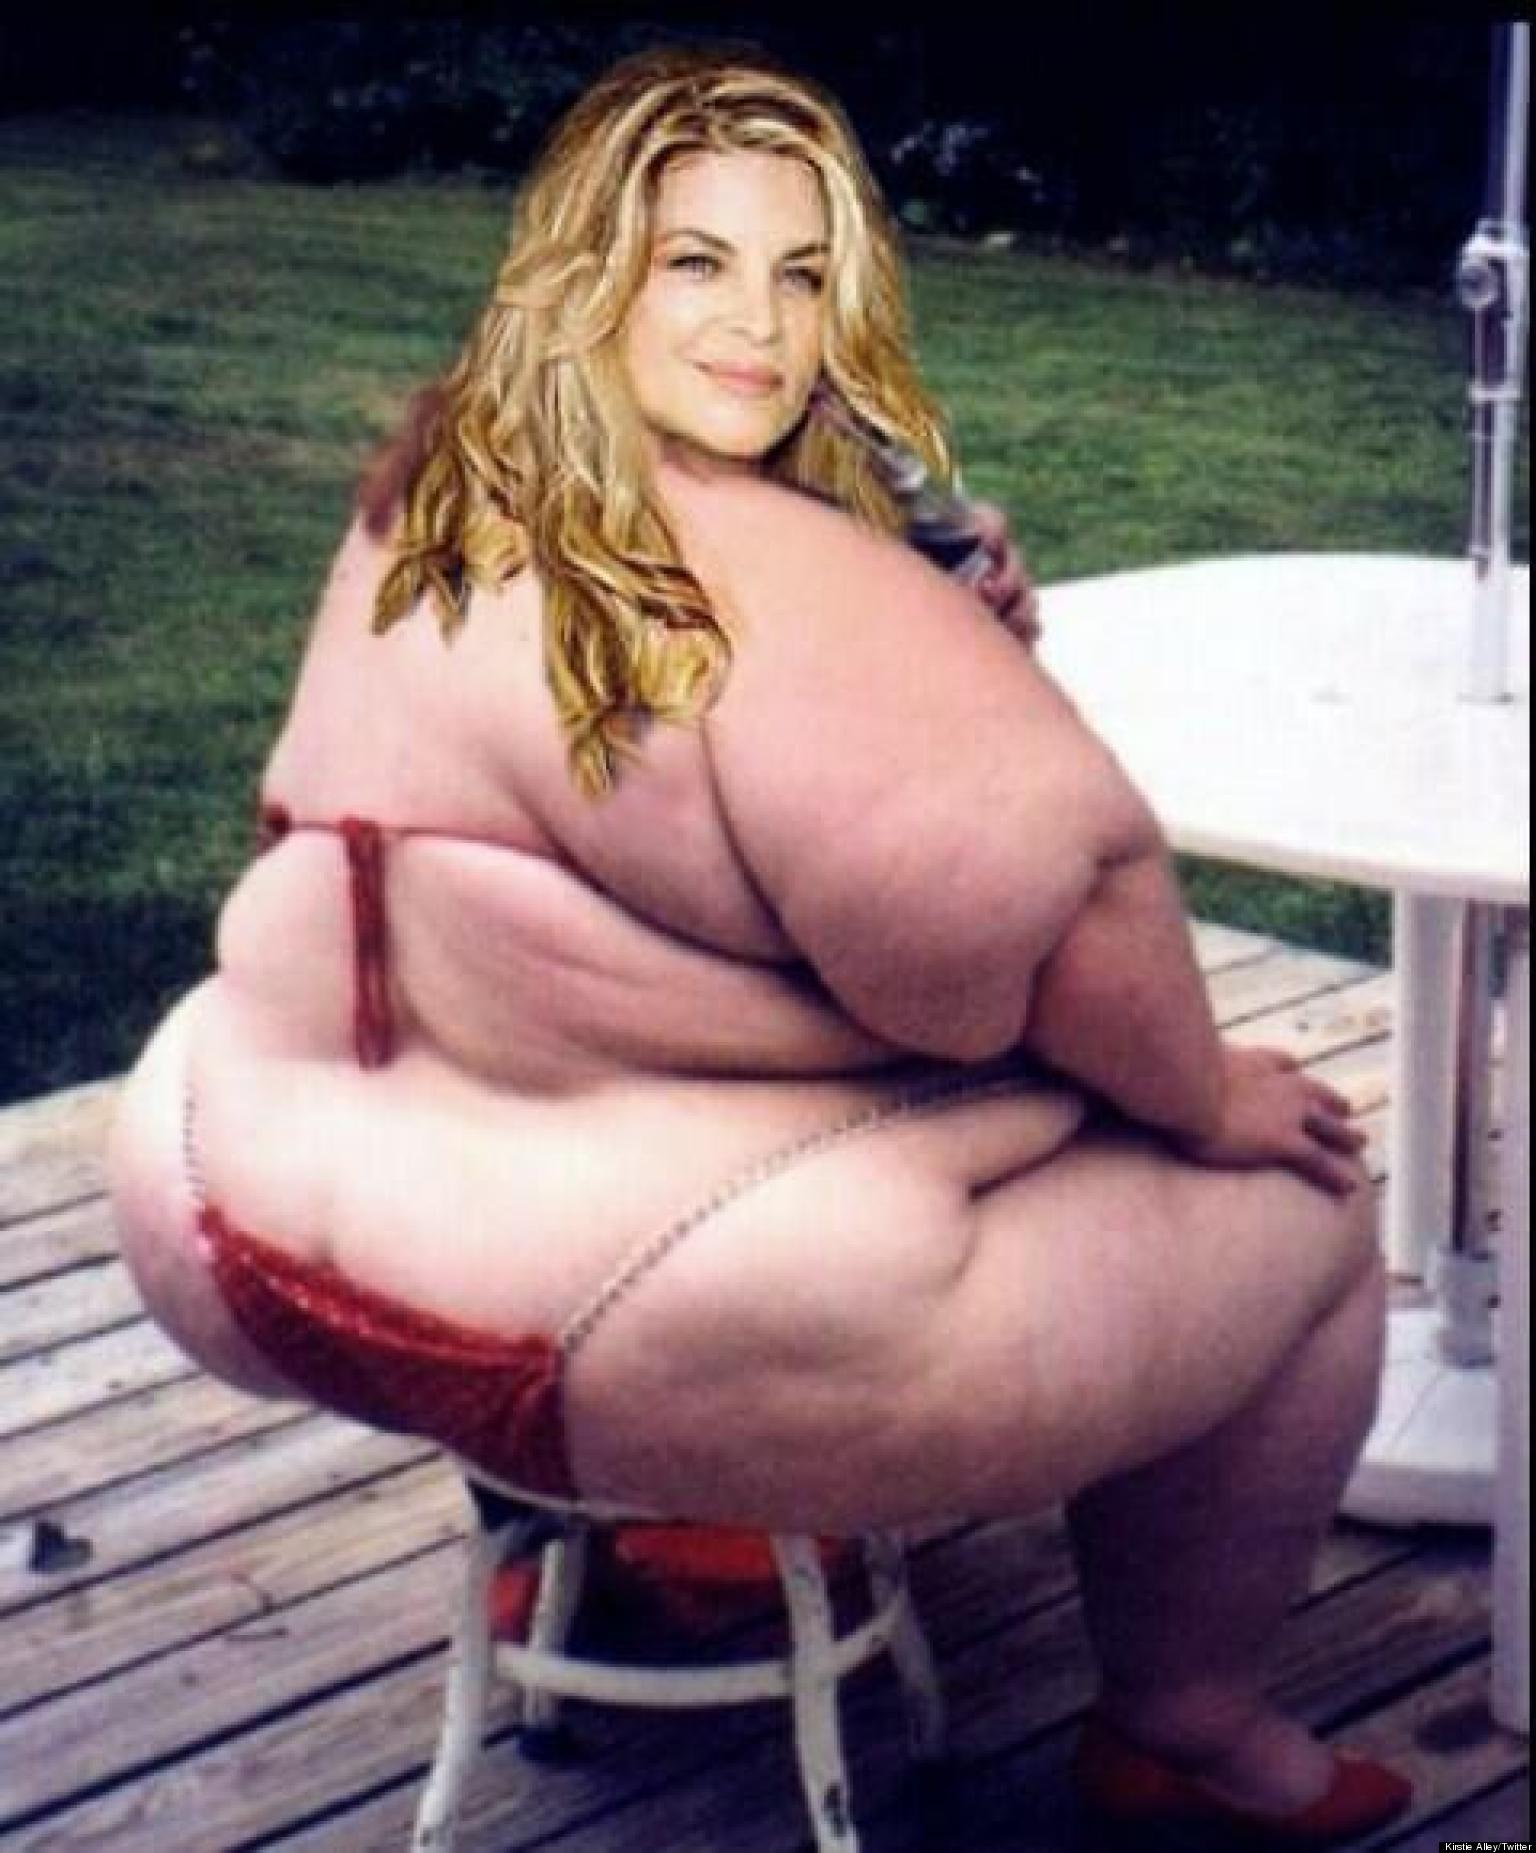 kirstie alley fat: actress tweets photoshopped fat photo of herself